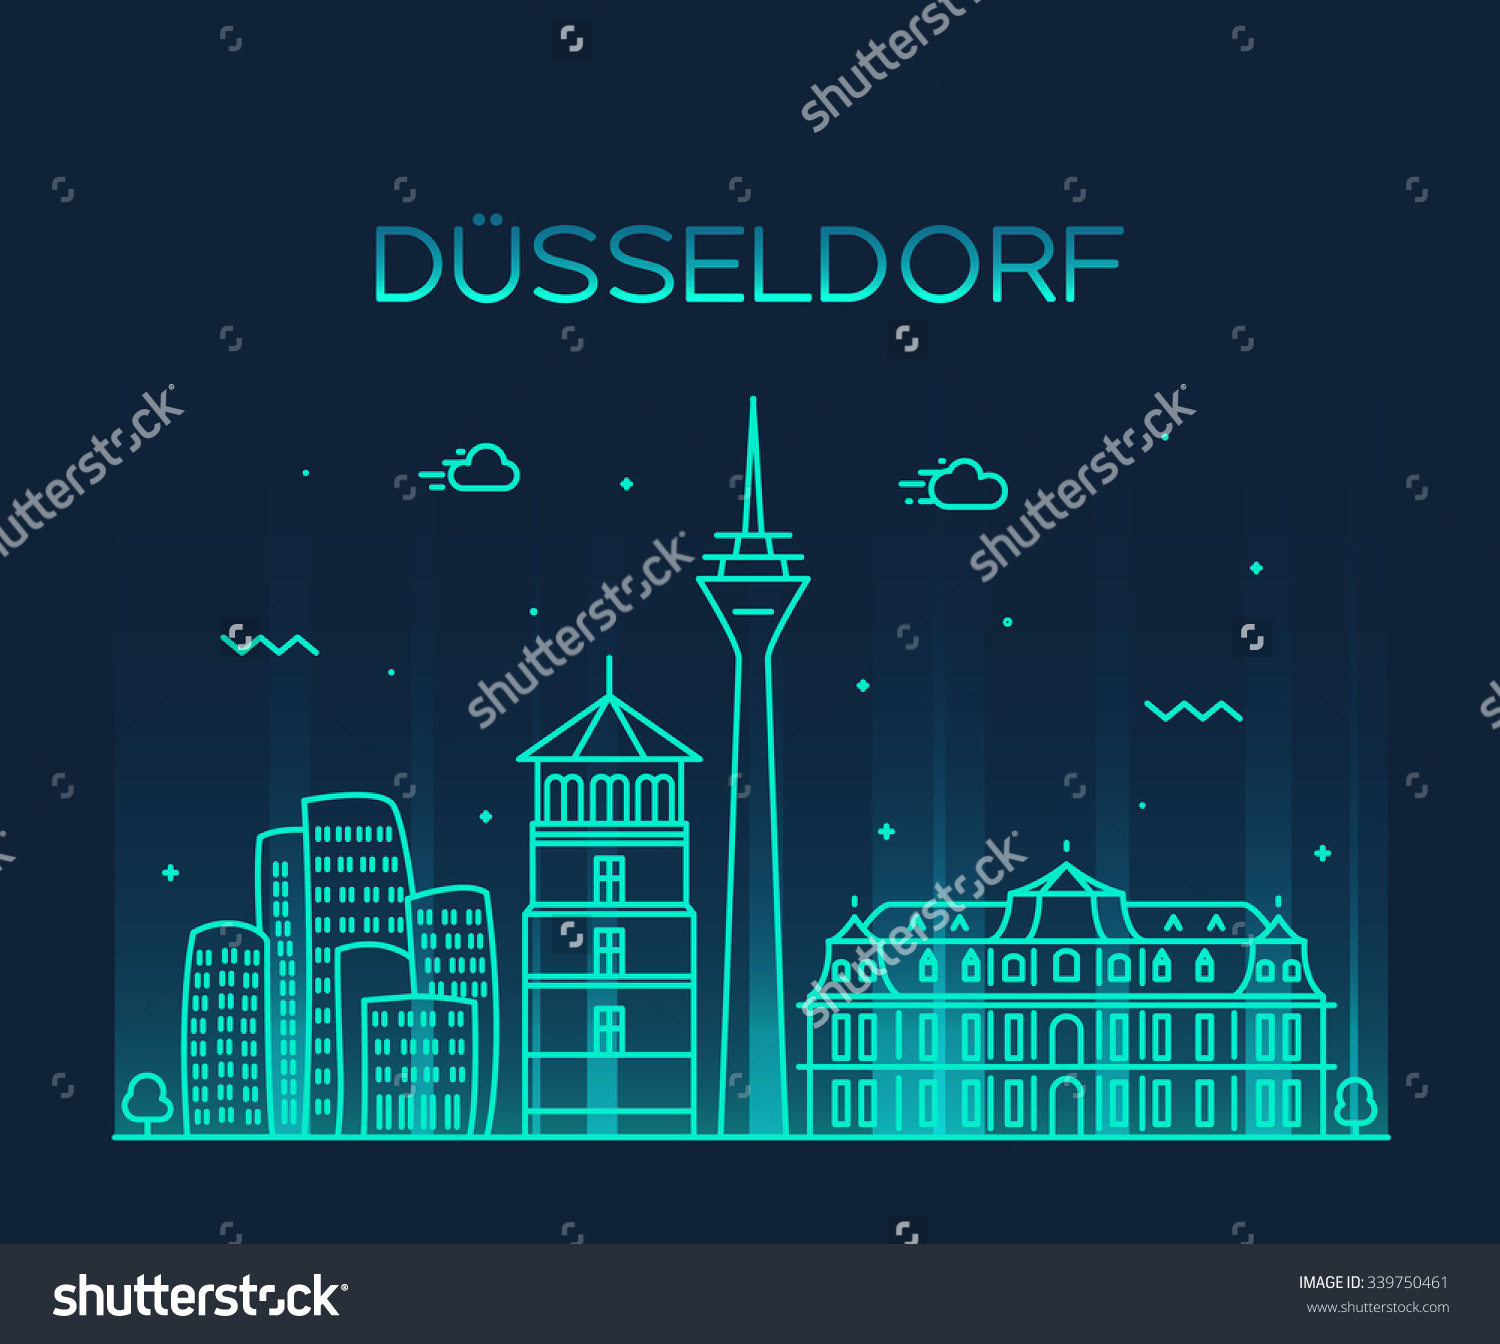 Dusseldorf Skyline Detailed Silhouette Trendy Vector Stock Vector.